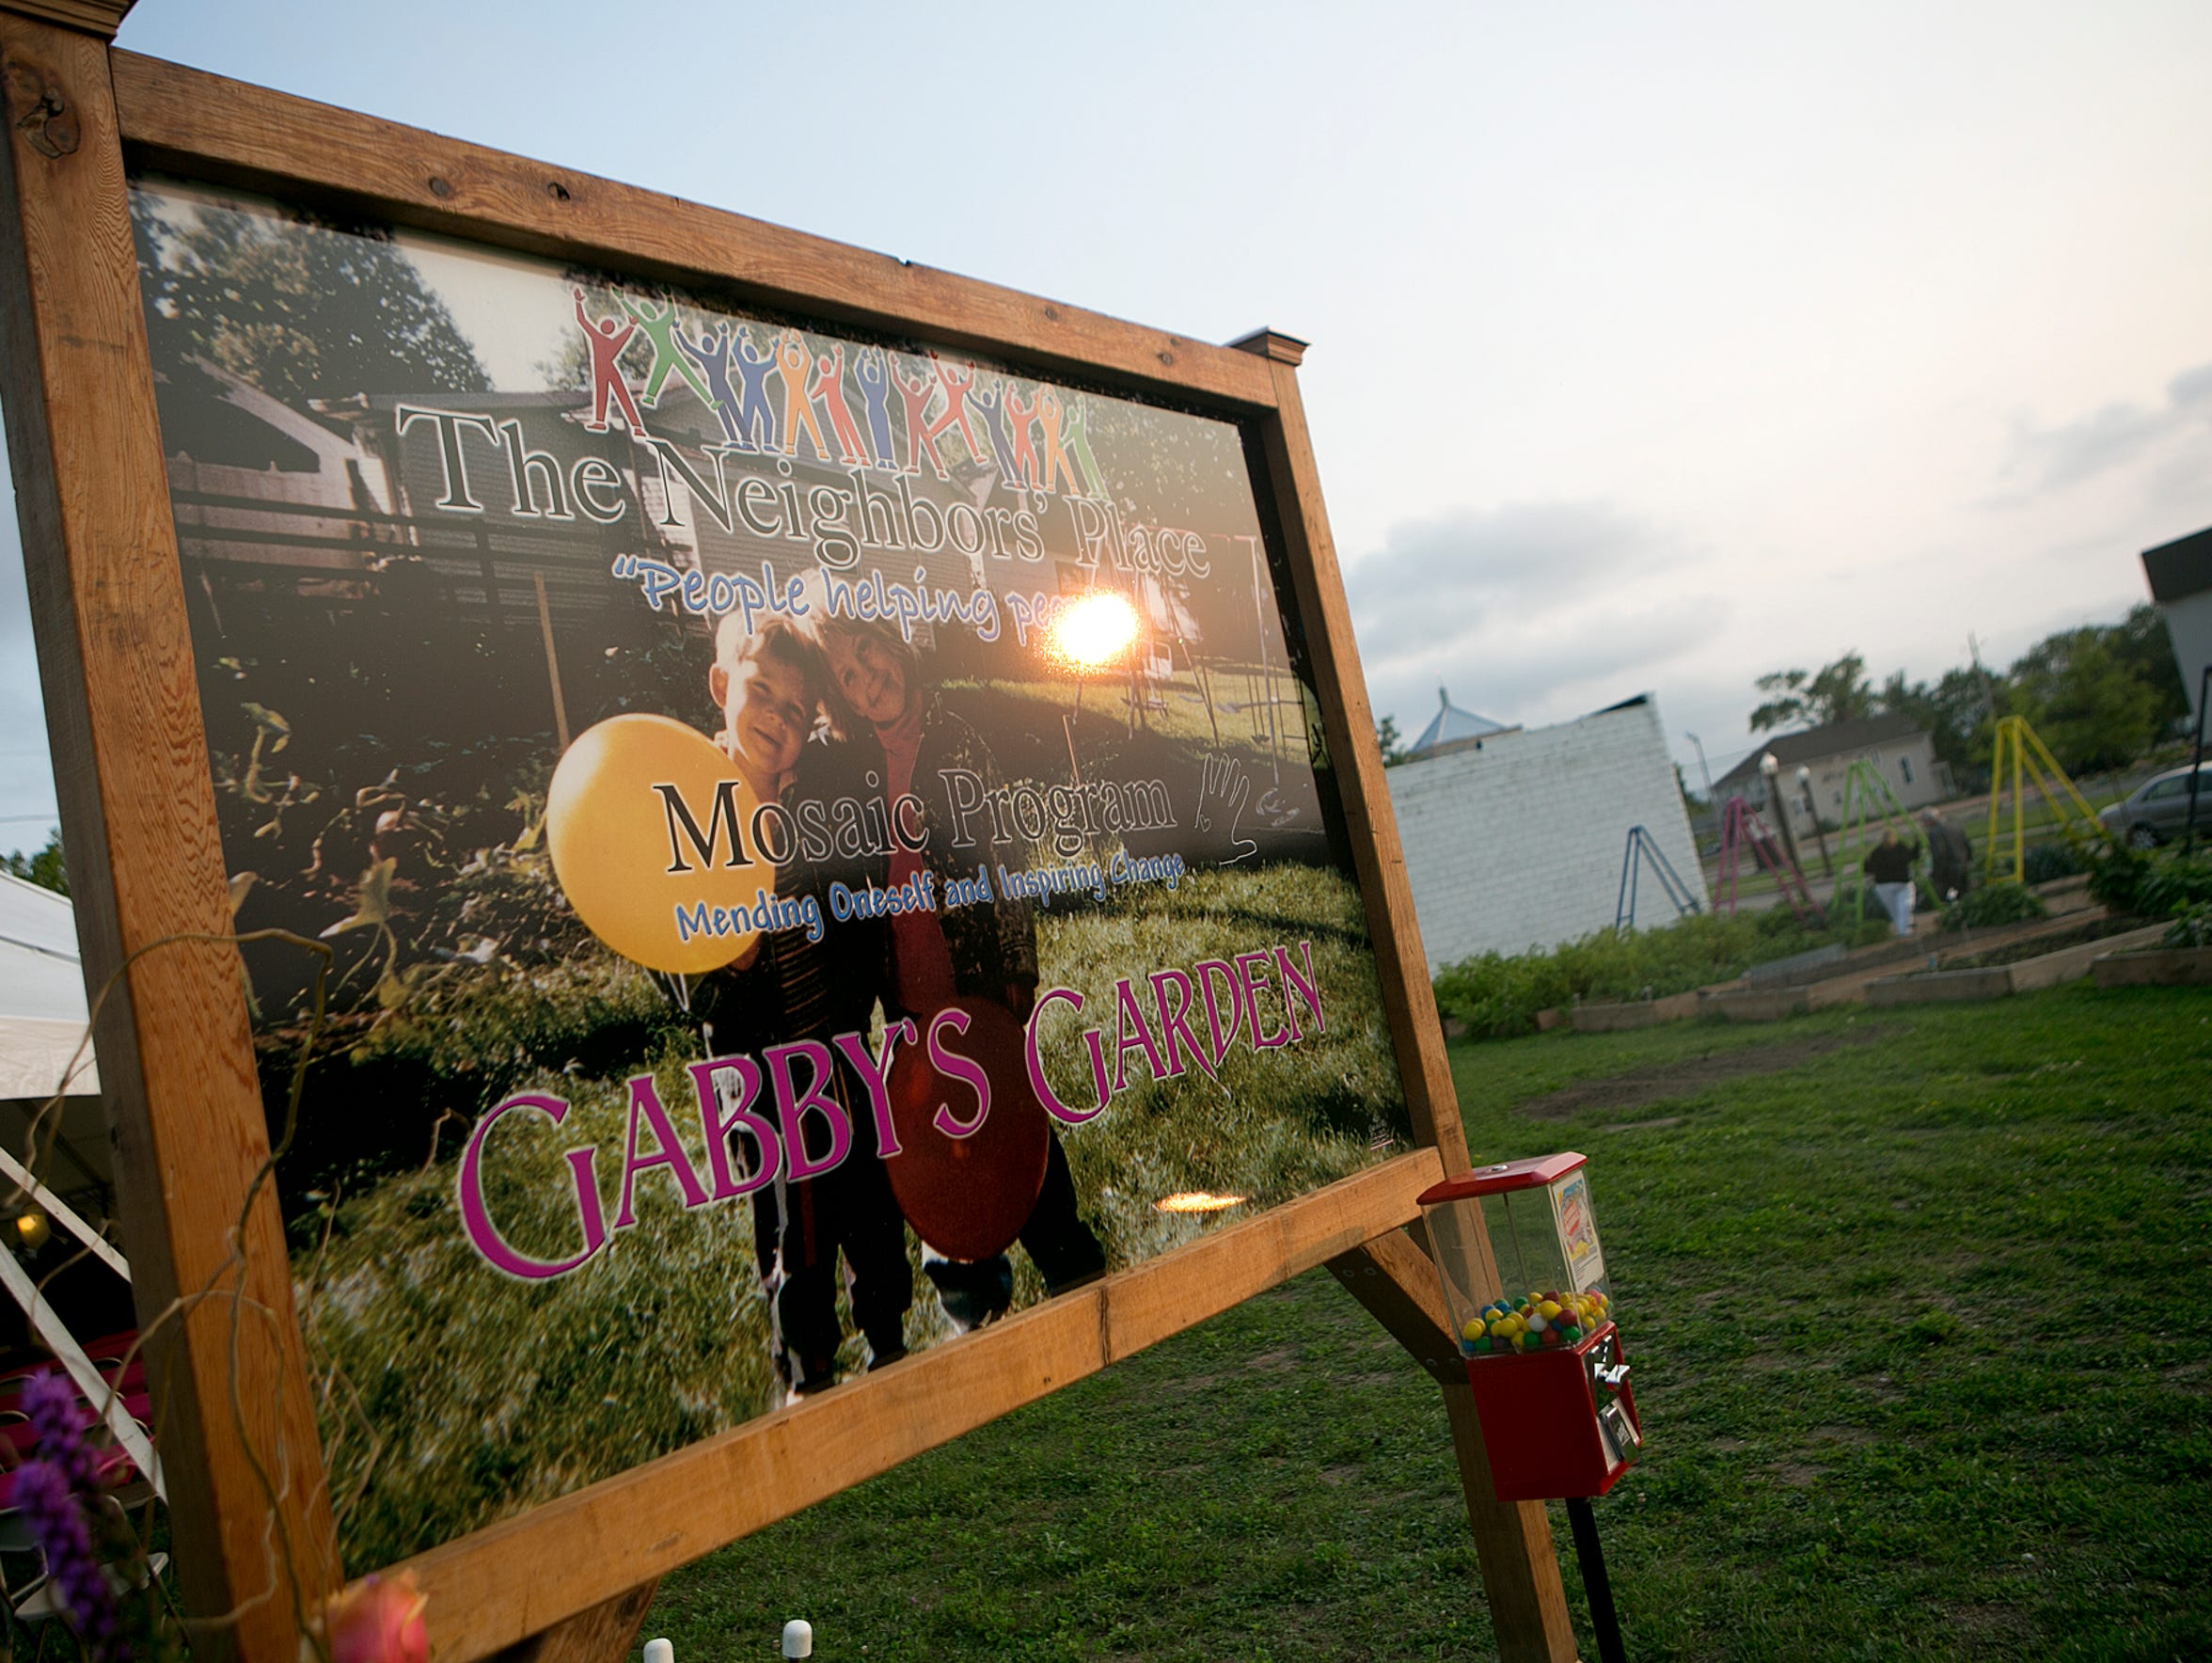 Gabby's Garden on Third Street in Wausau is named after